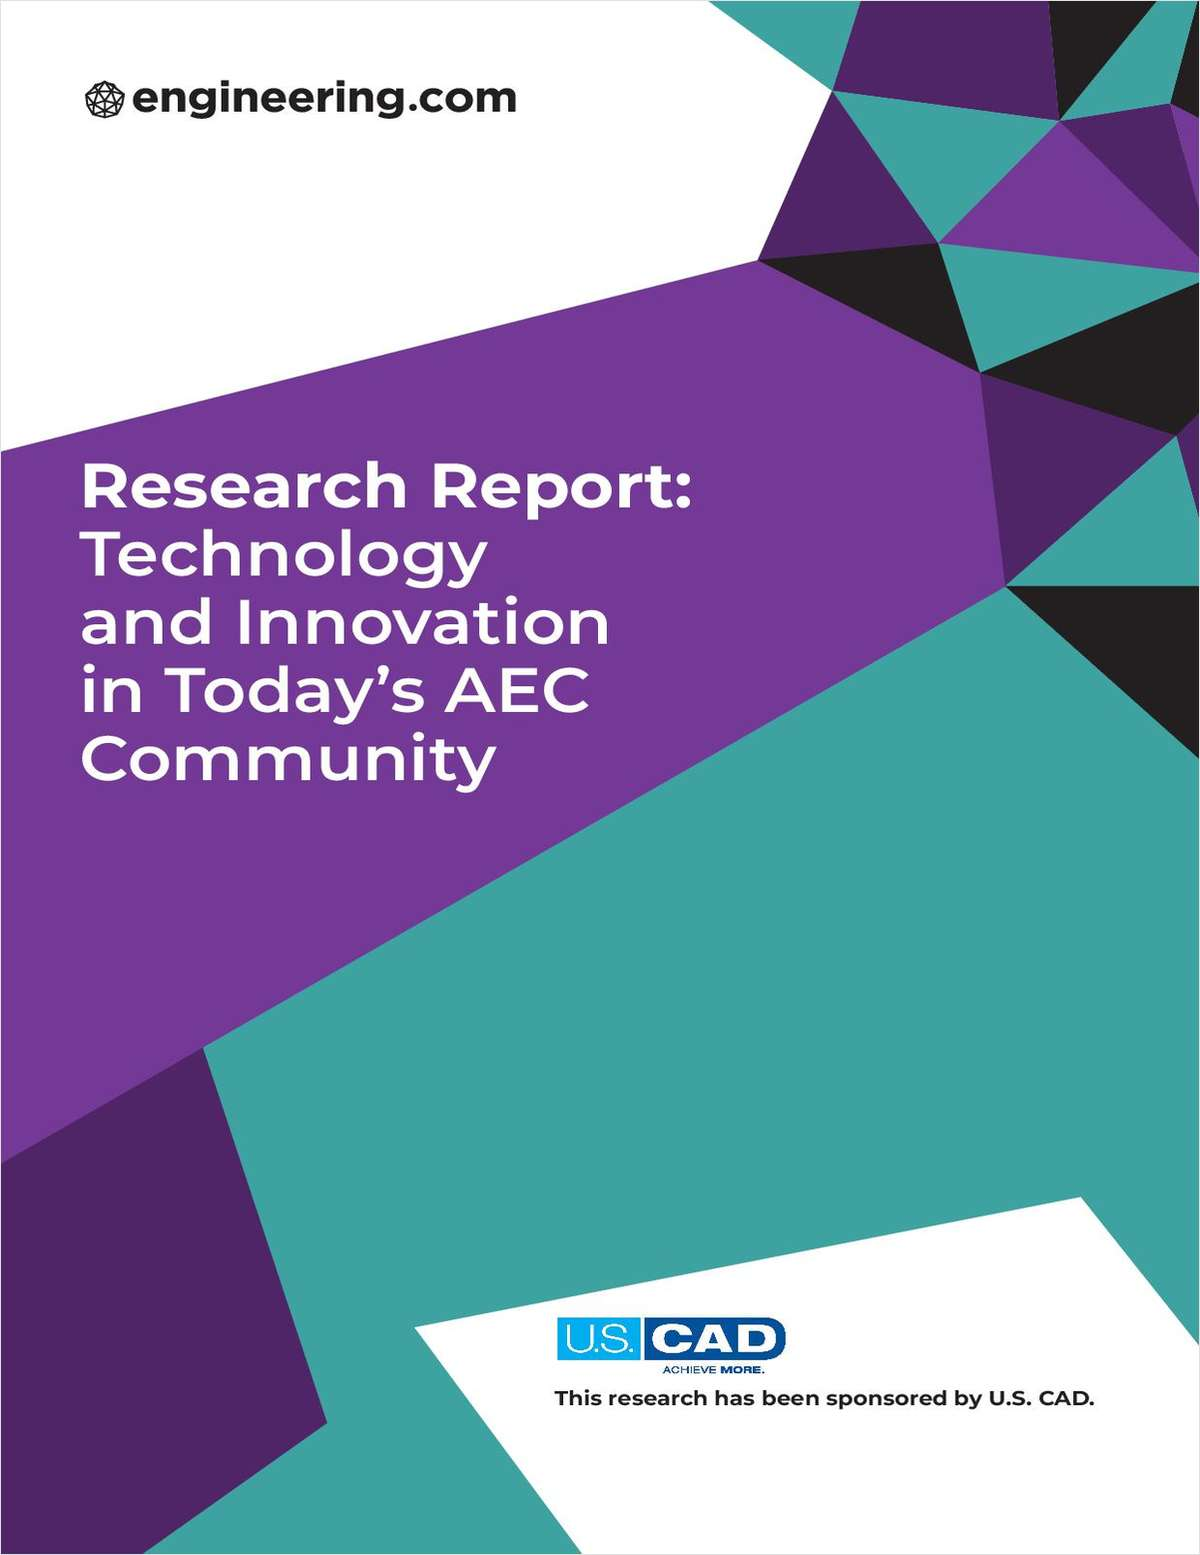 Research Report -- Technology and Innovation in Today's AEC Community